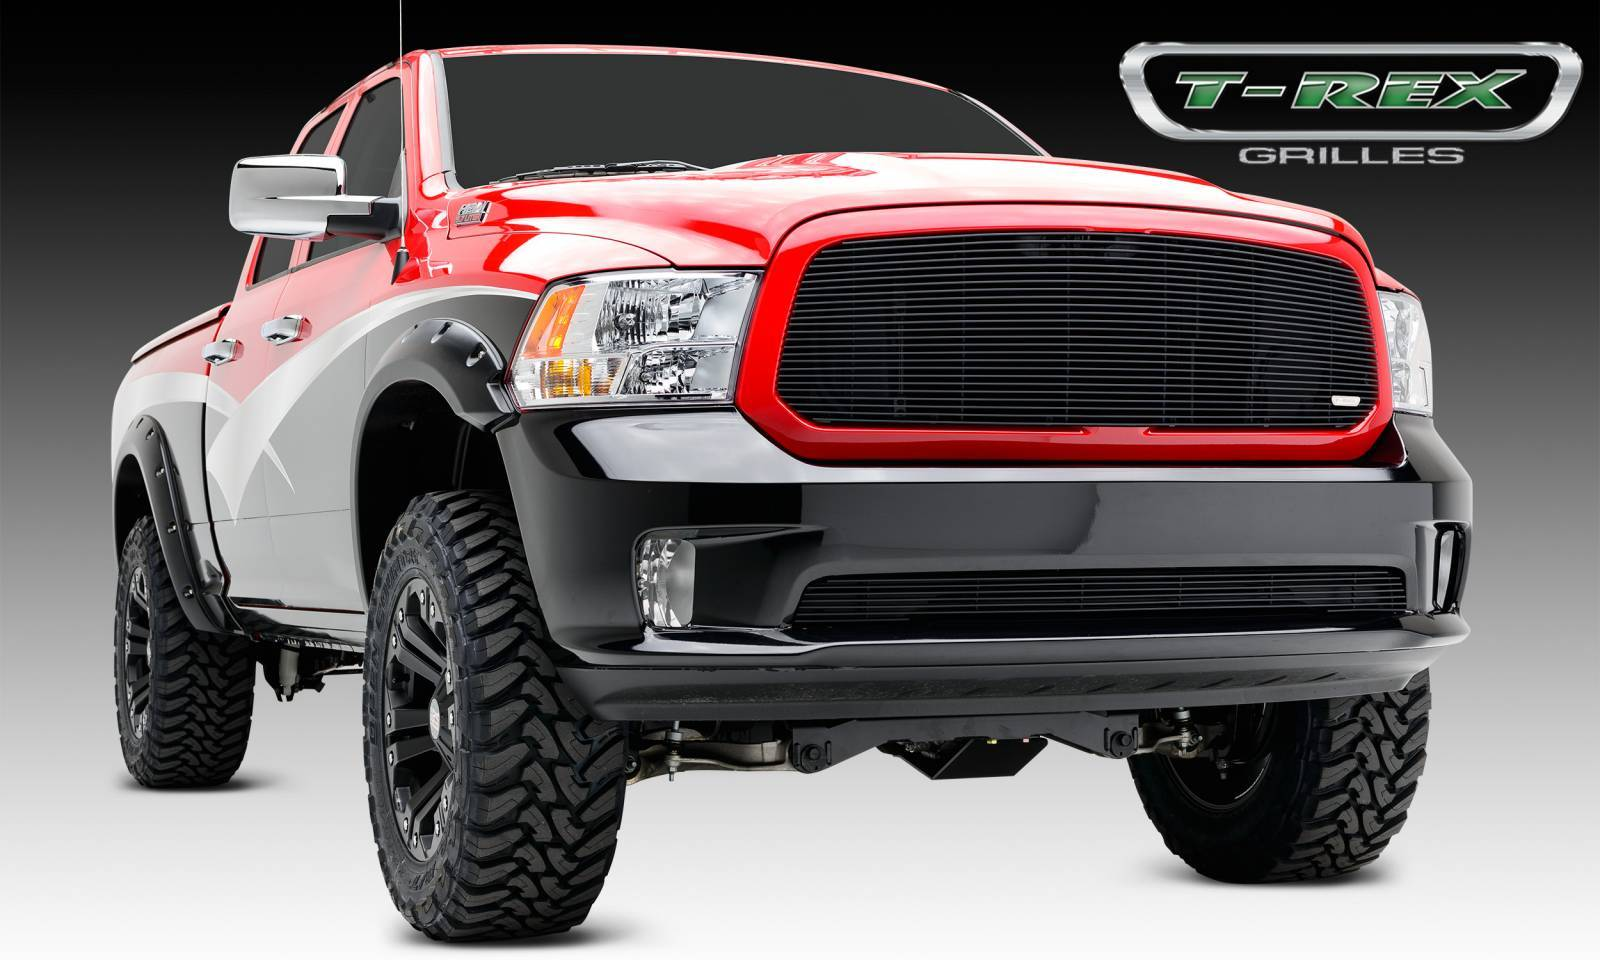 Dodge Ram 1500 & Sport, Billet Grille, Main, Insert , 1 Pc, Black Powder Coated Aluminum Bars, Fits all models. - Pt # 20458B